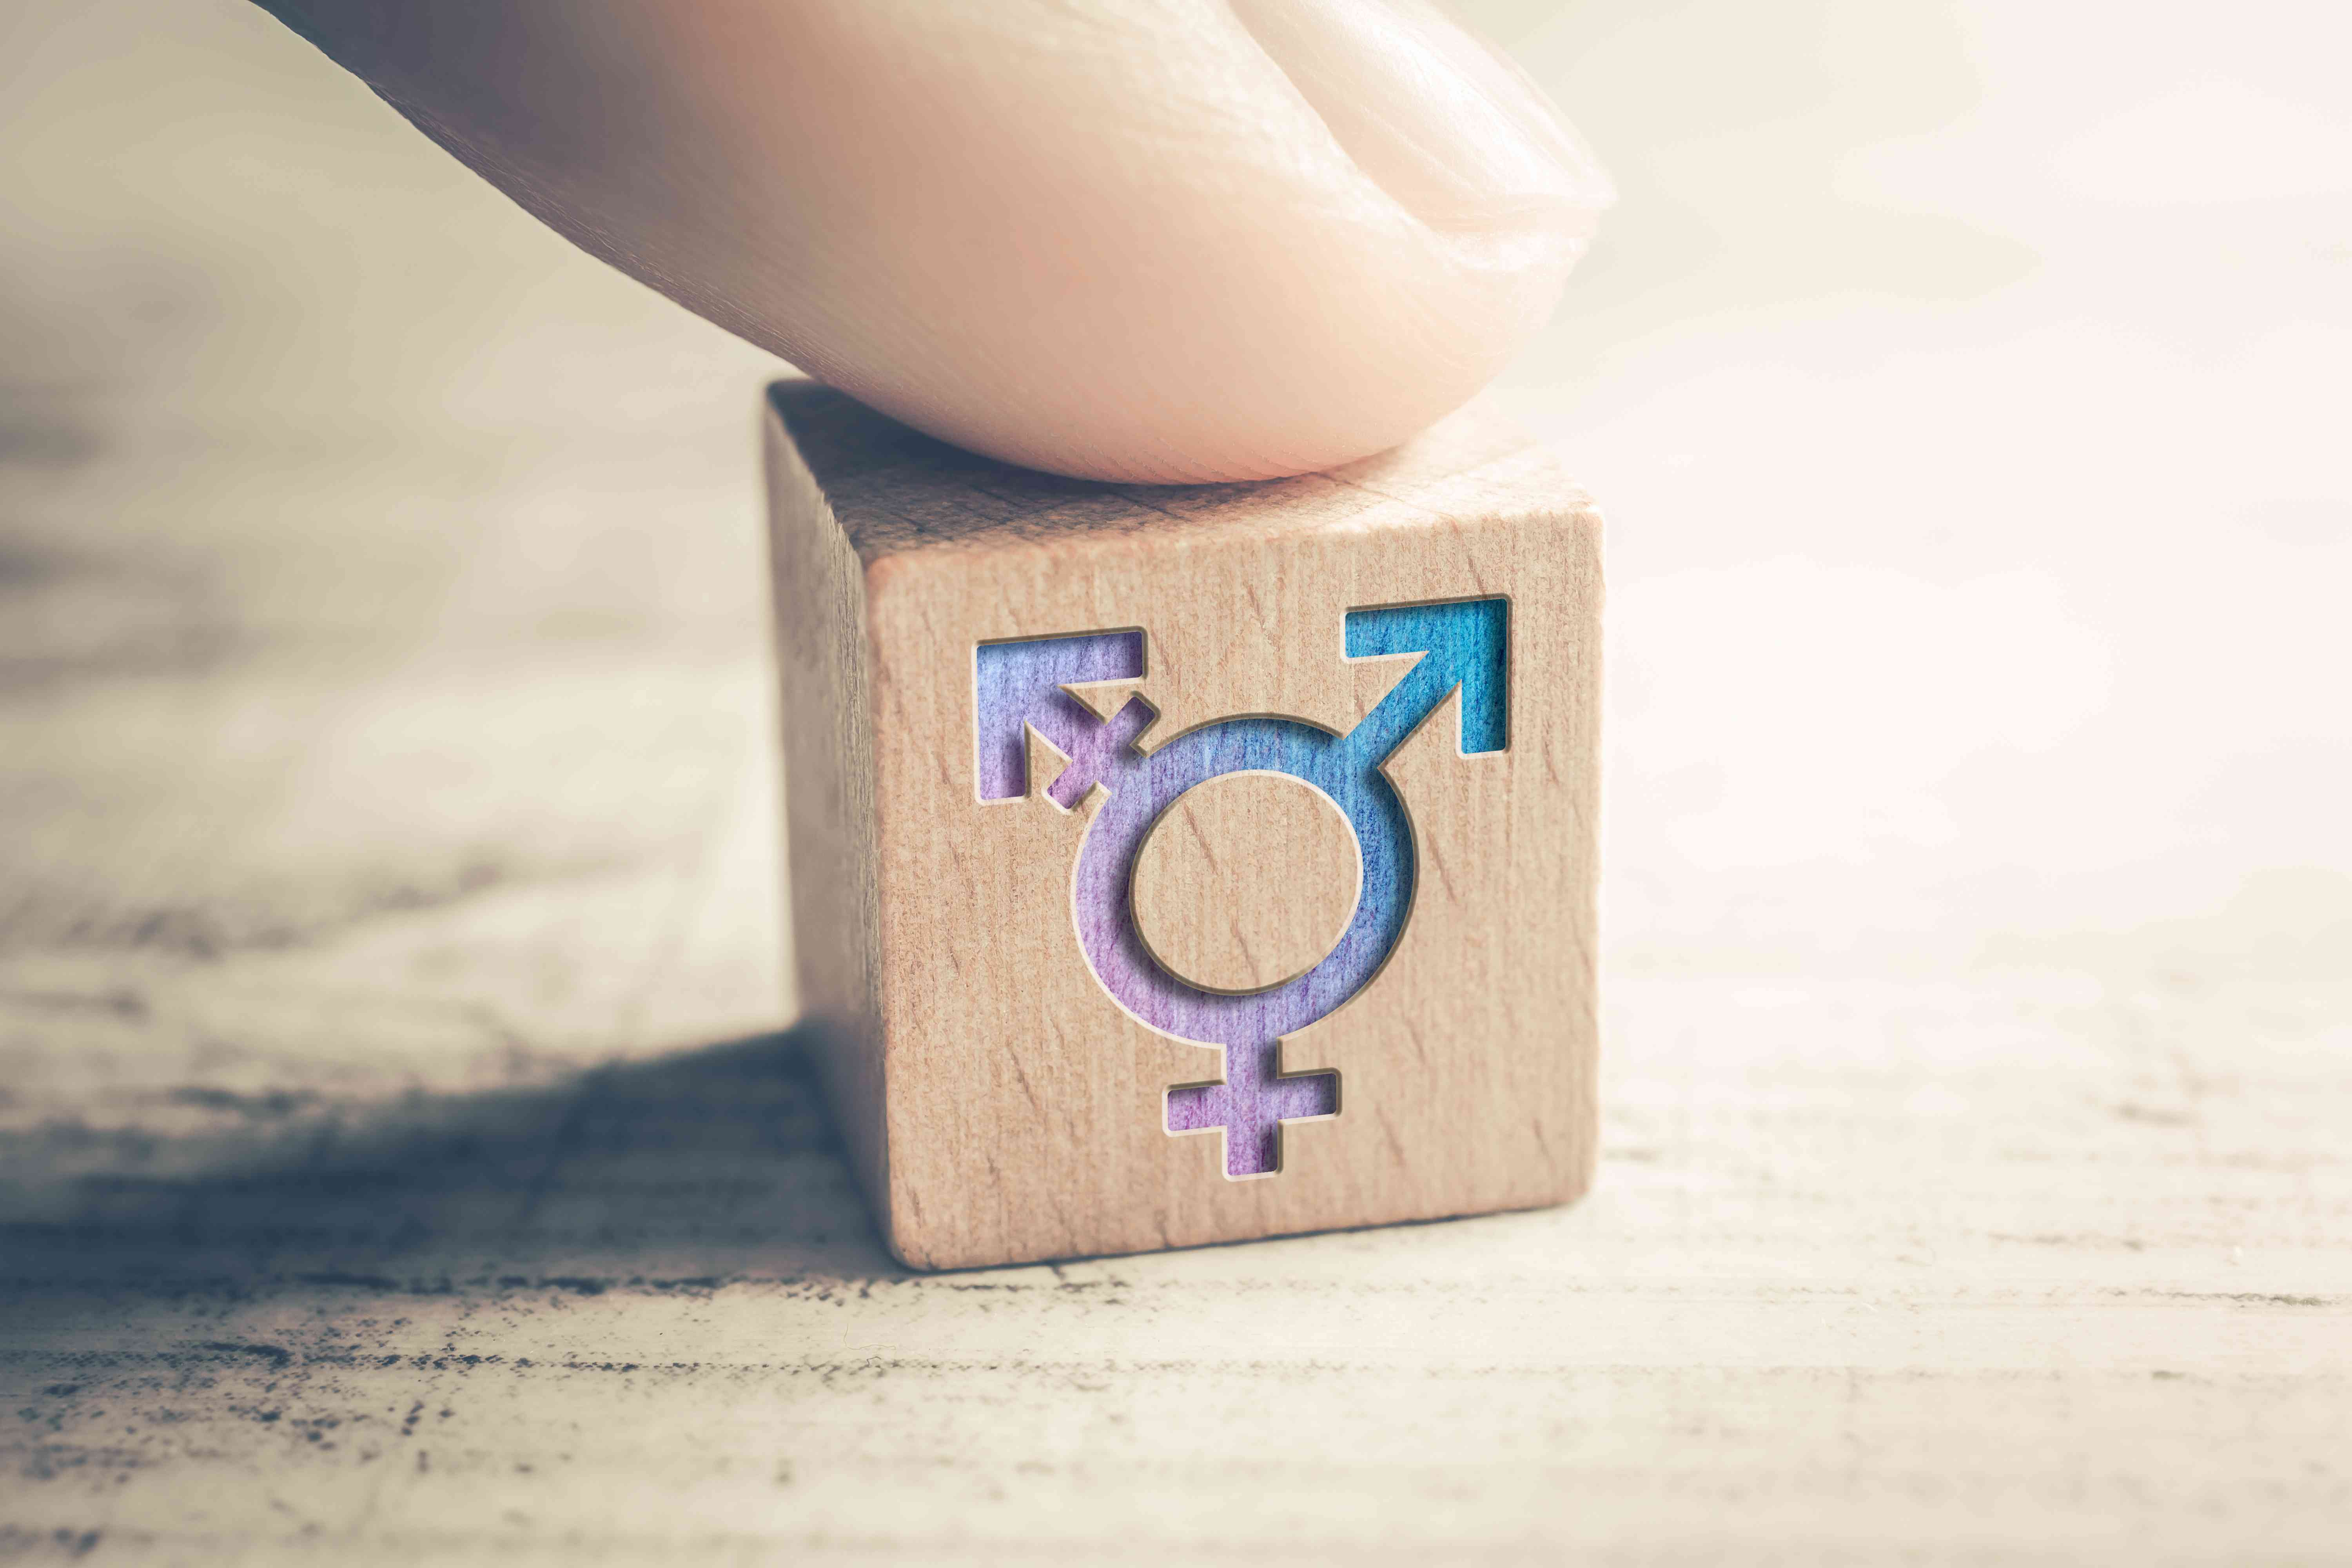 Transgender icon on a wooden block